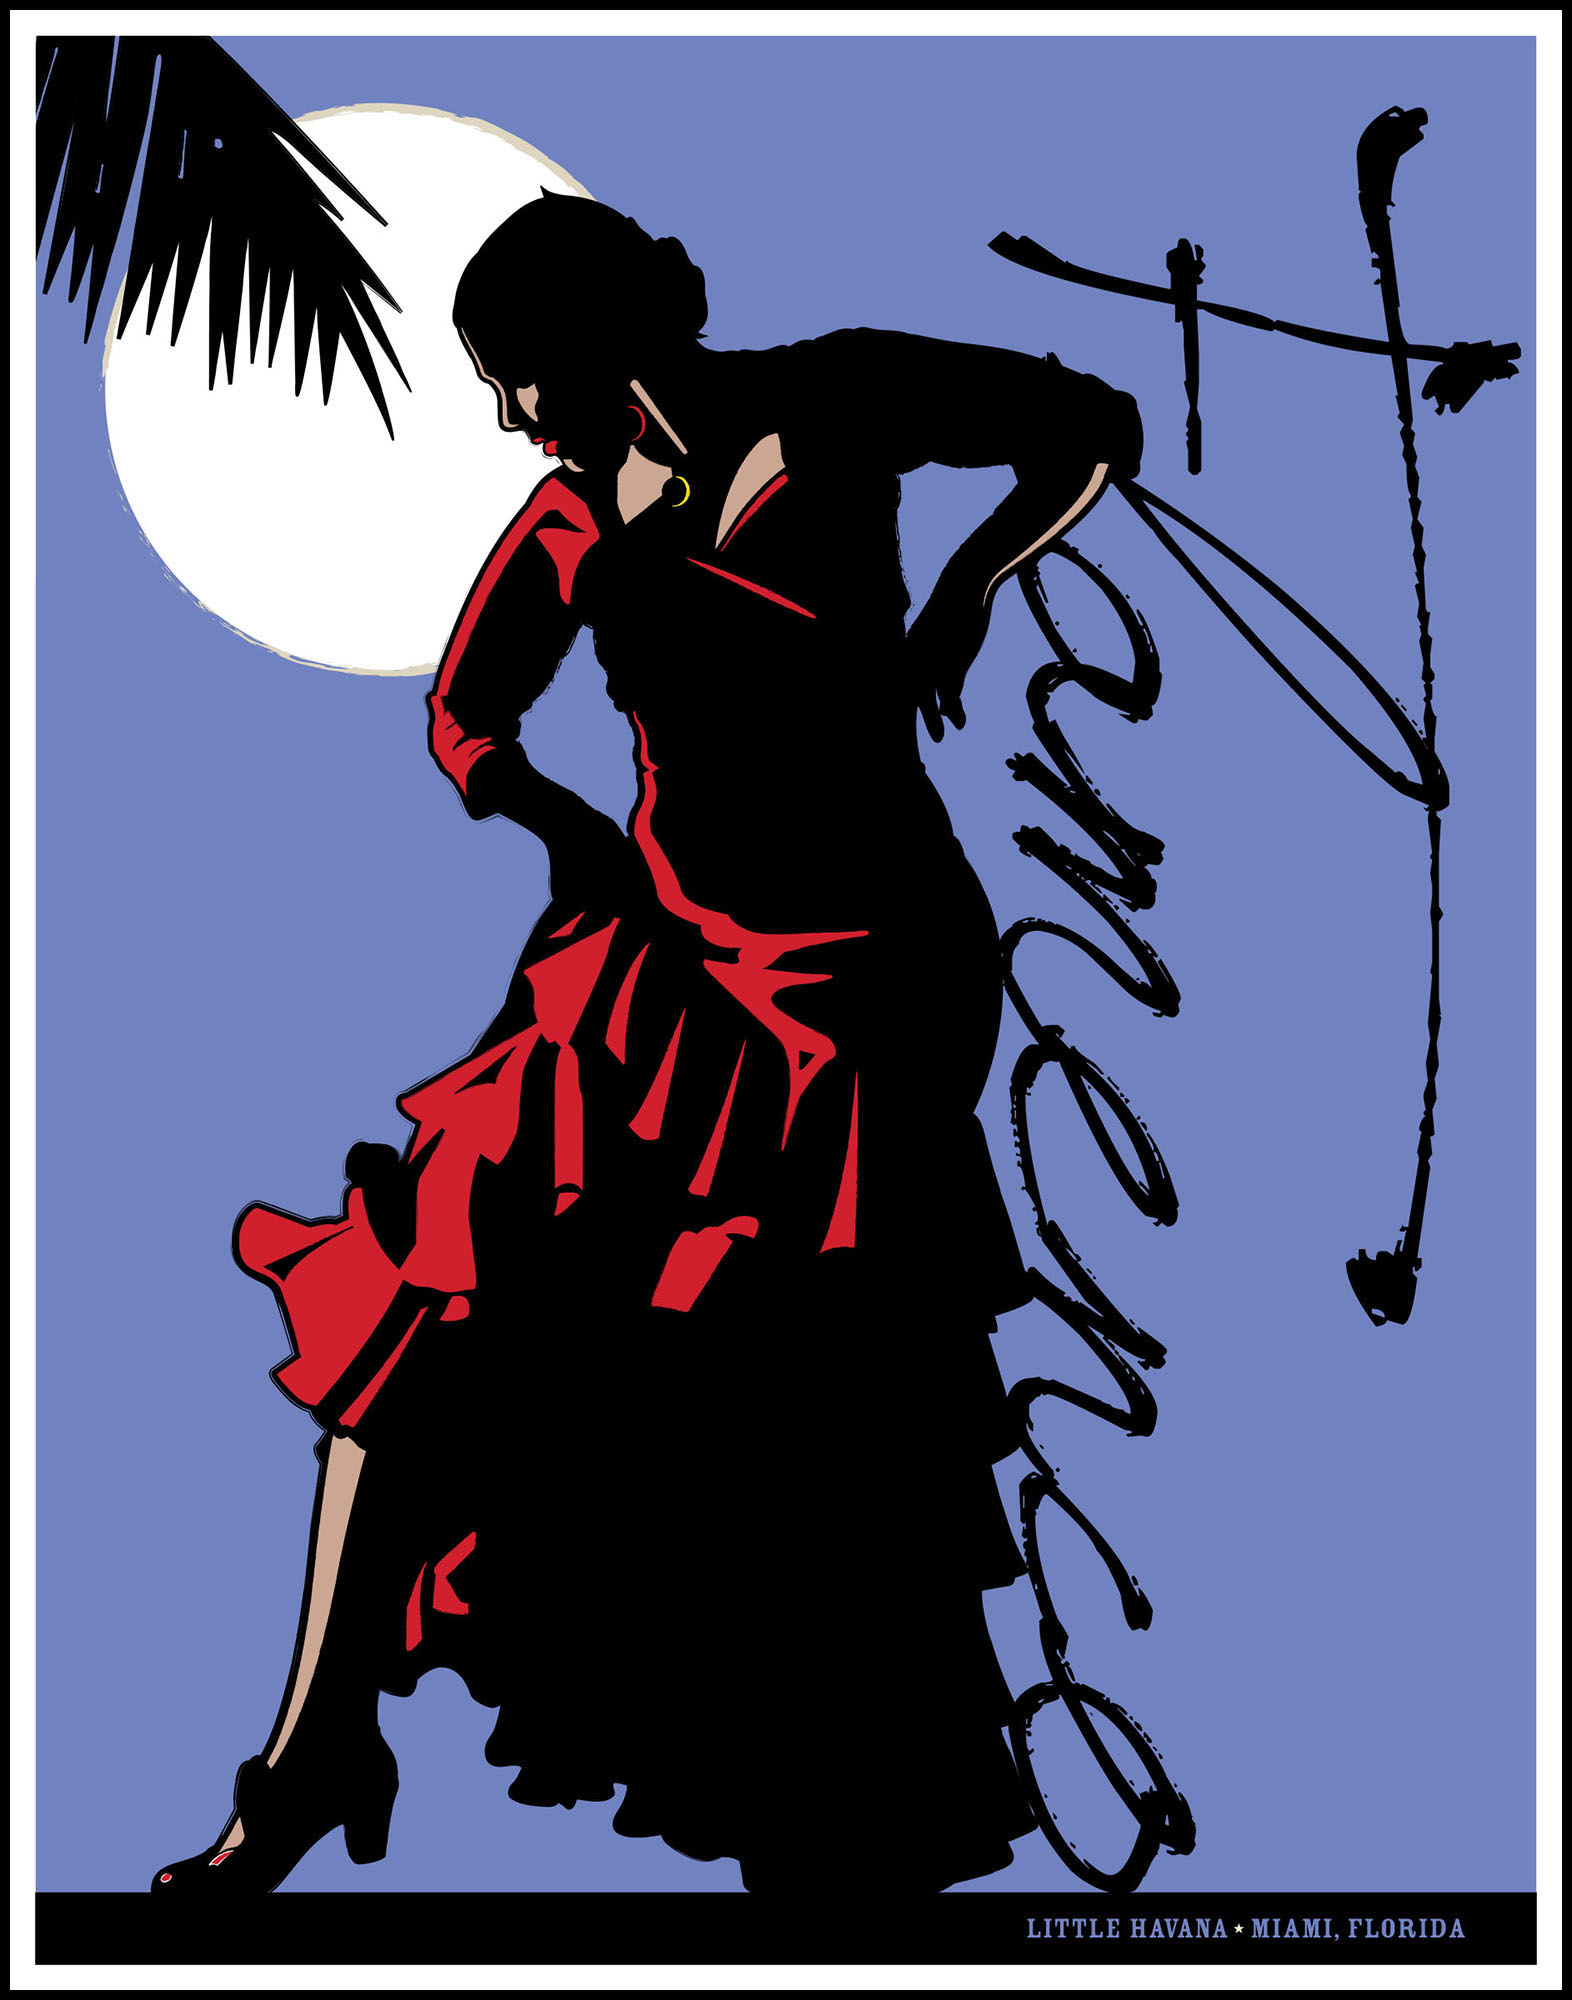 Flamenco final_11 x 14.jpg